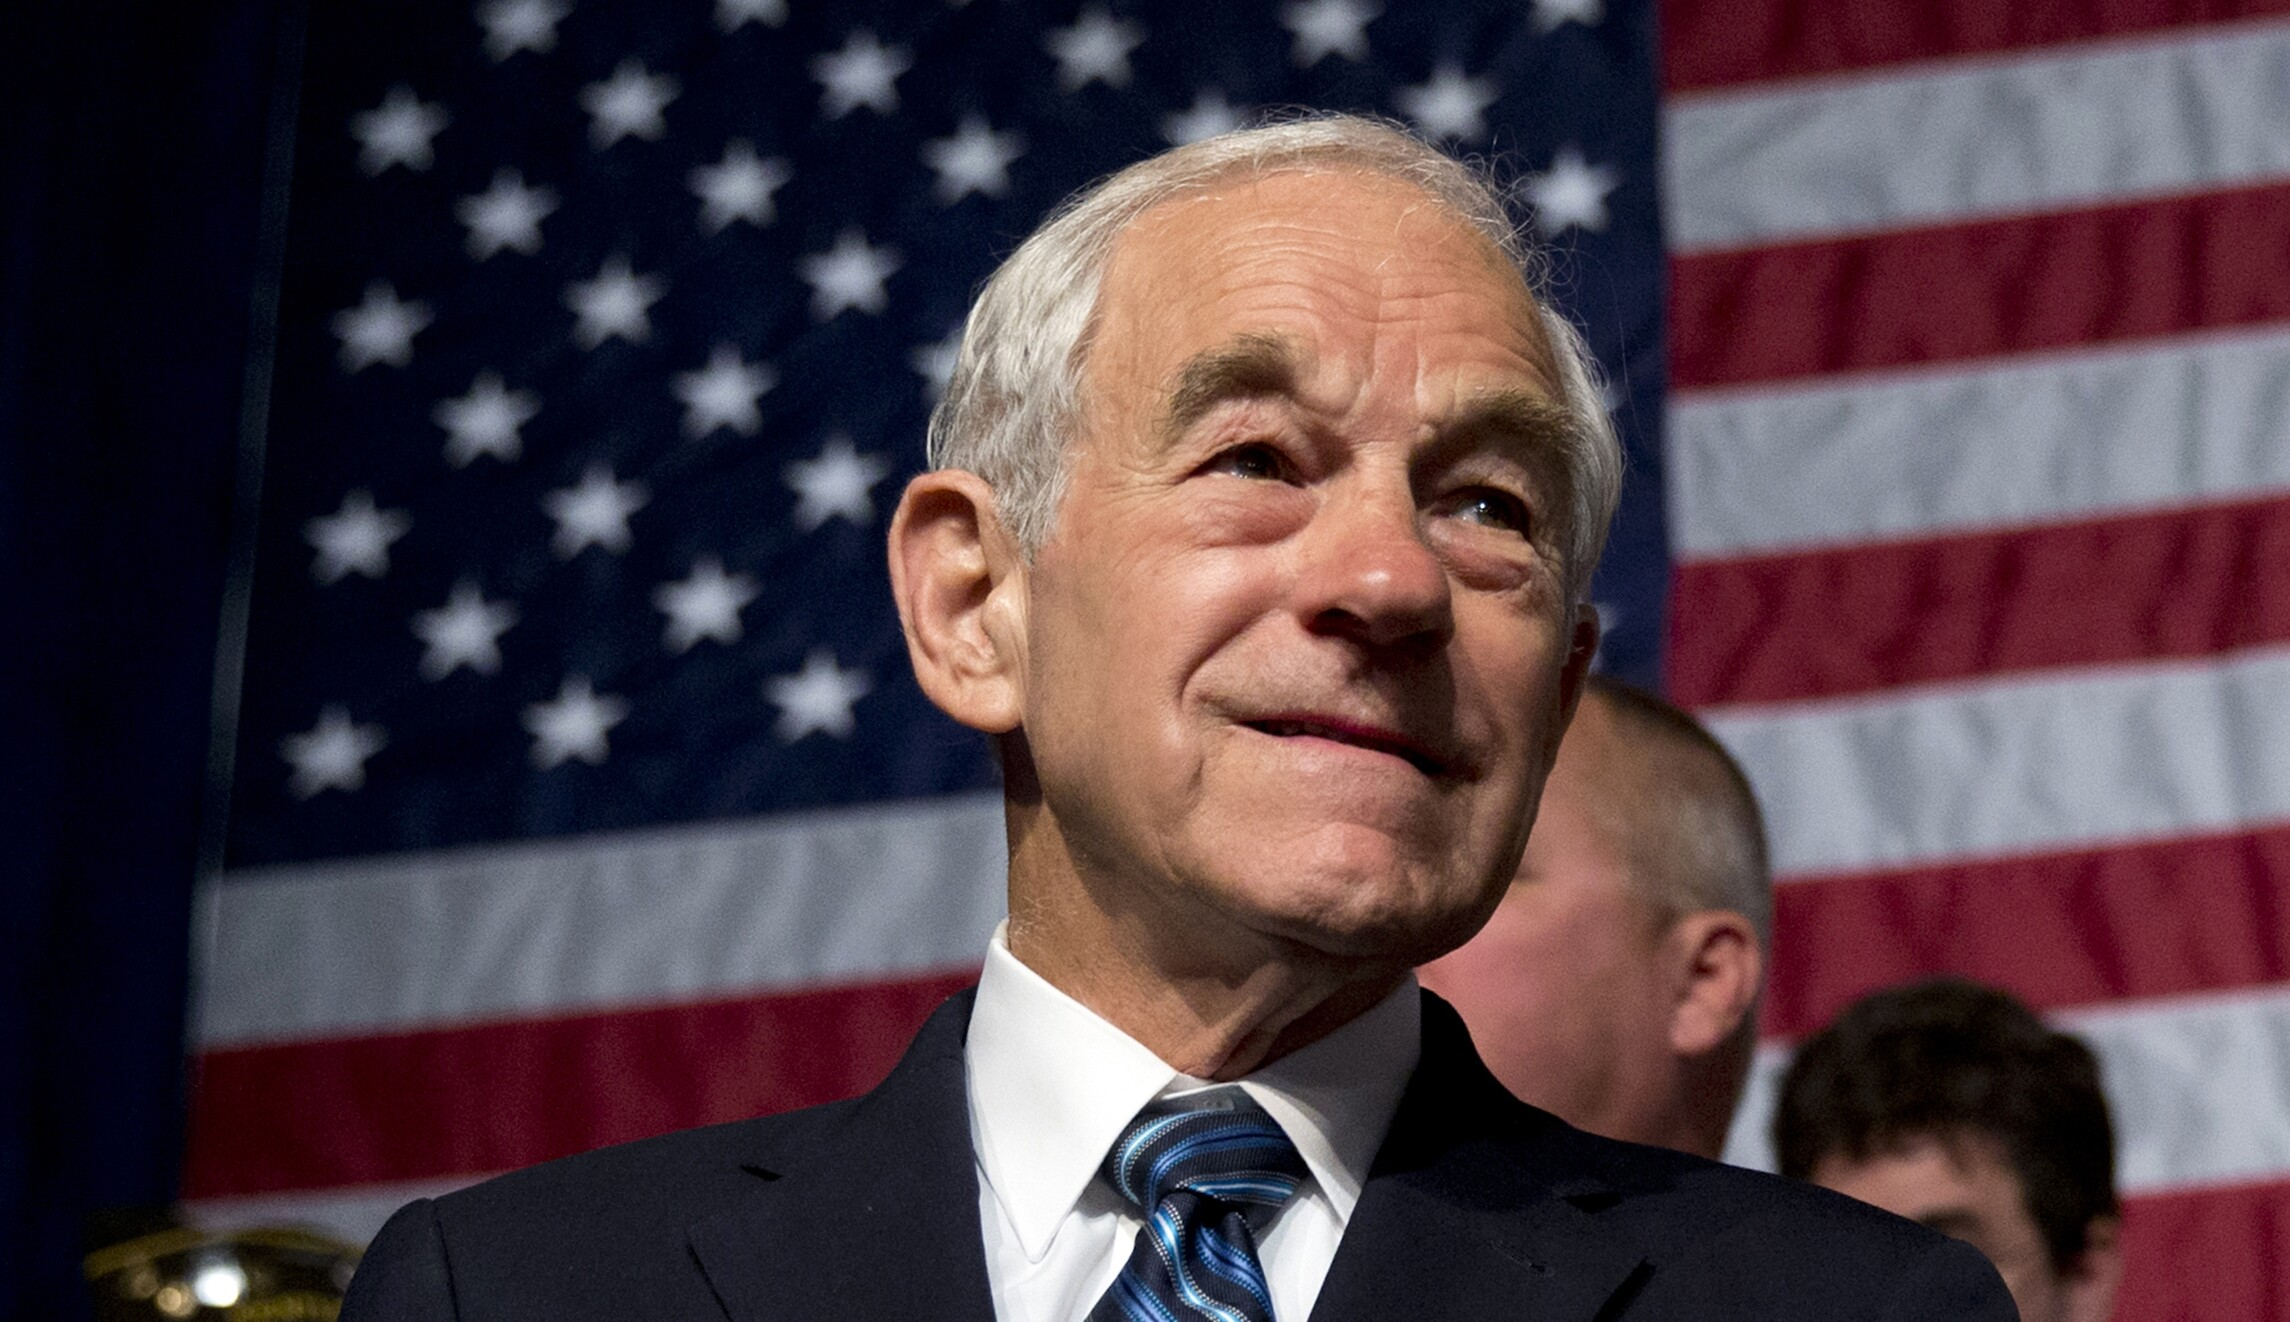 Ron Paul: Trump may be vulnerable to 2020 GOP primary challenge